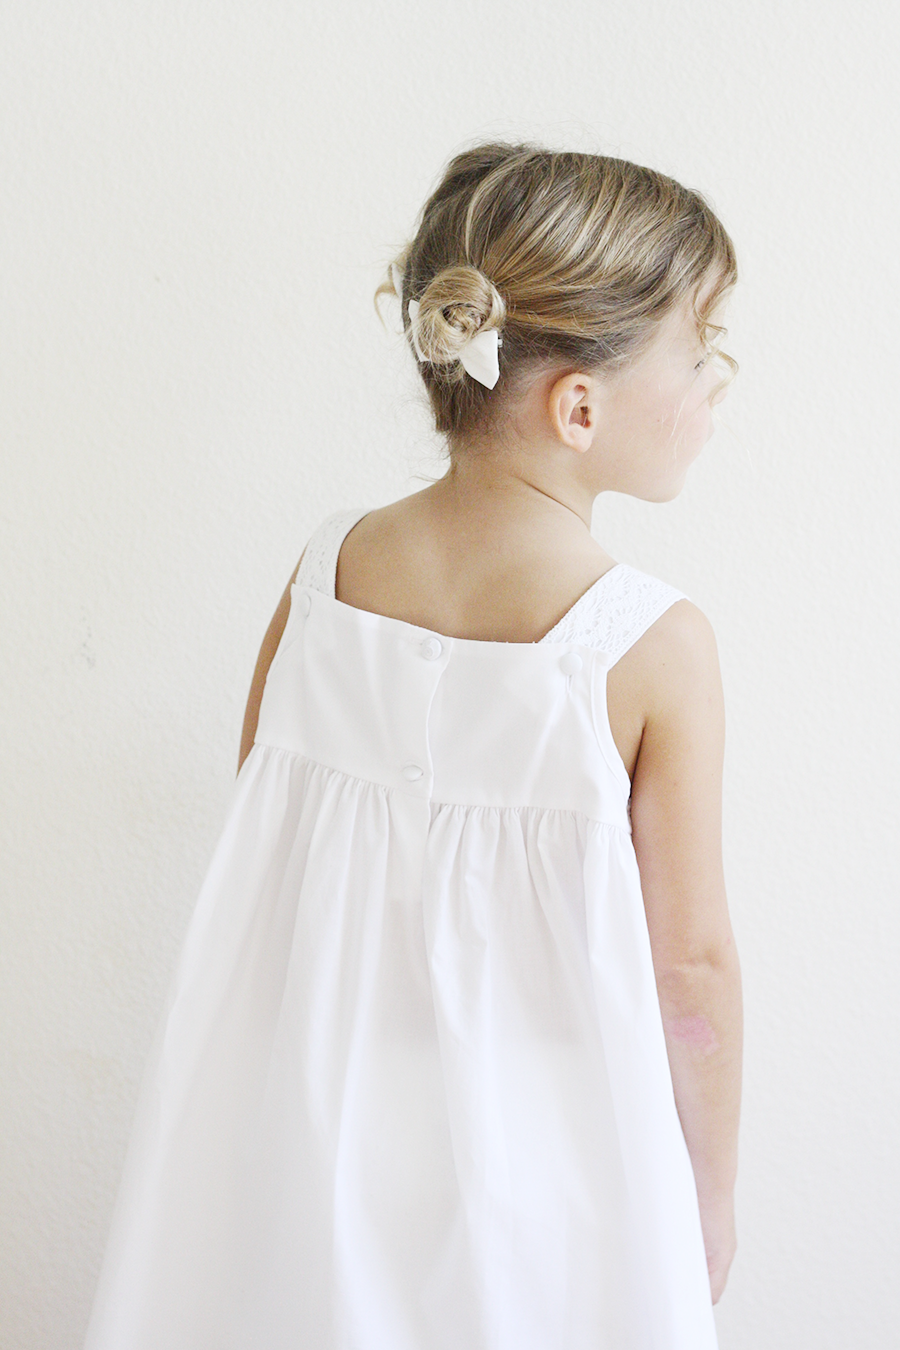 Strasburg Children | Girls White Lace Dress | Flower Girl | Ashlee Proffitt